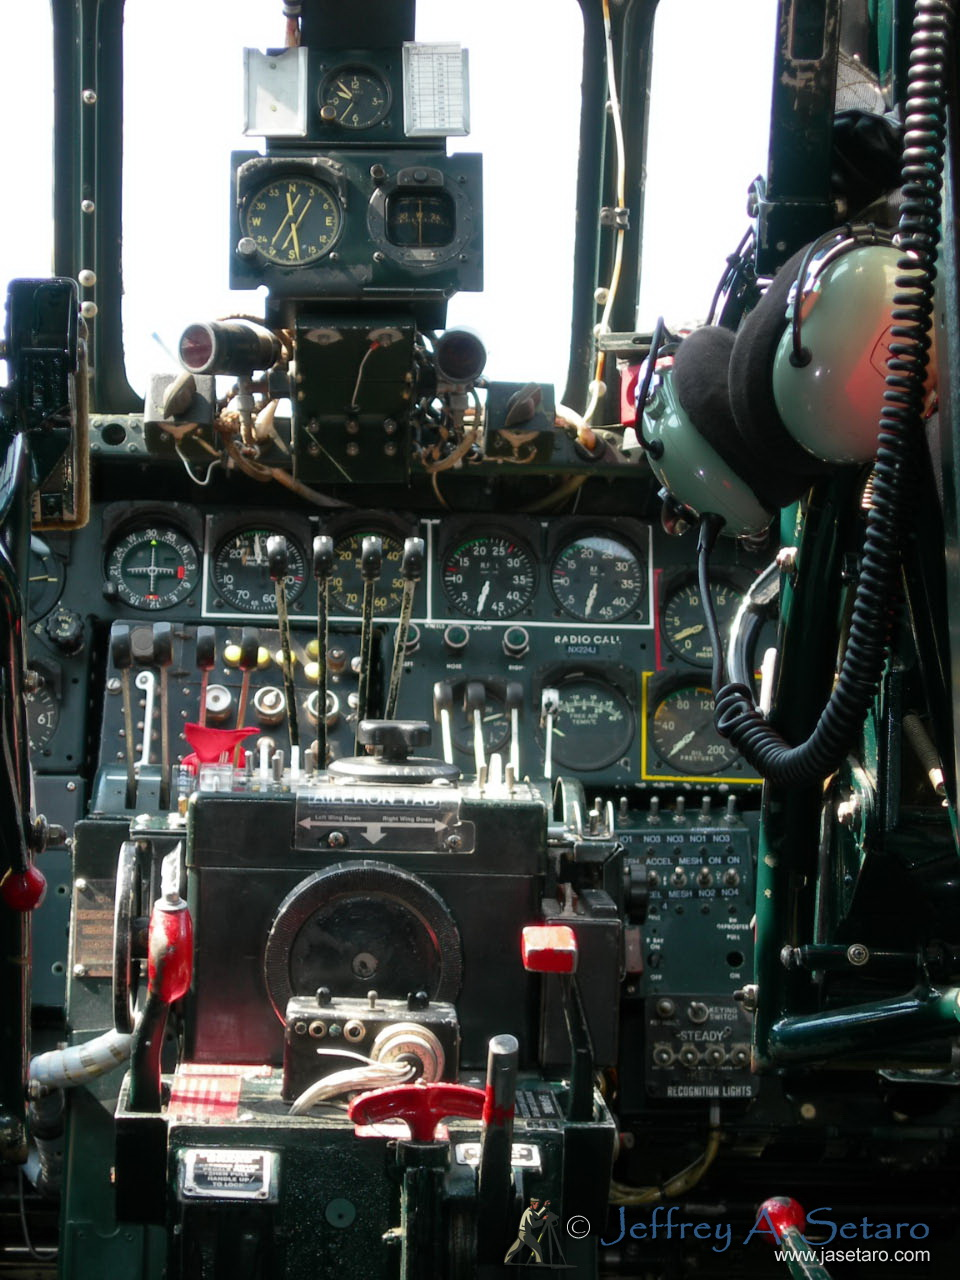 The Witchcraft's cockpit.